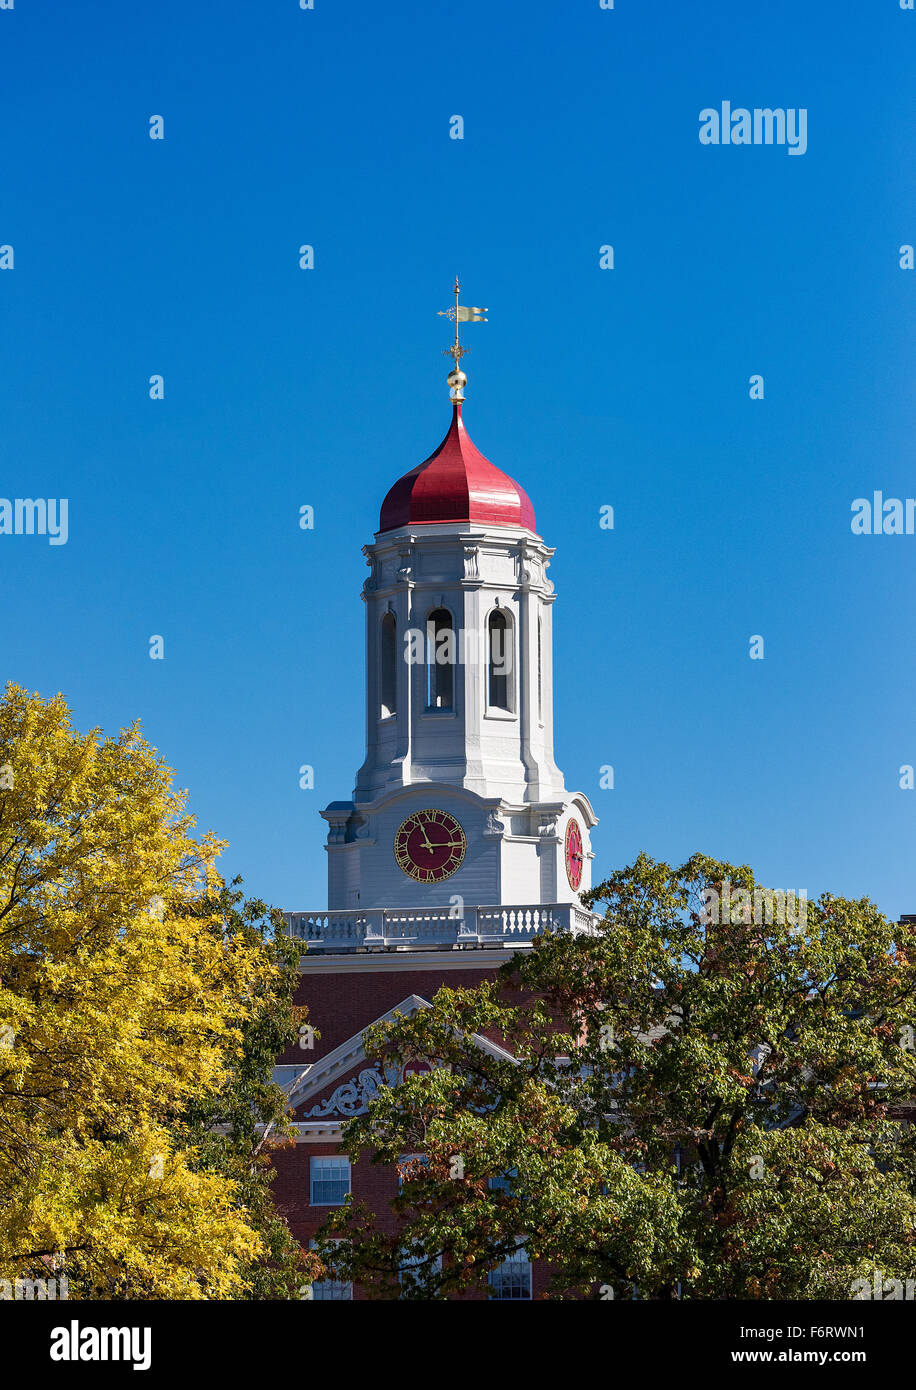 Dunster House dormitory with clock tower, Harvard University, Cambridge, Massachusetts, USA - Stock Image